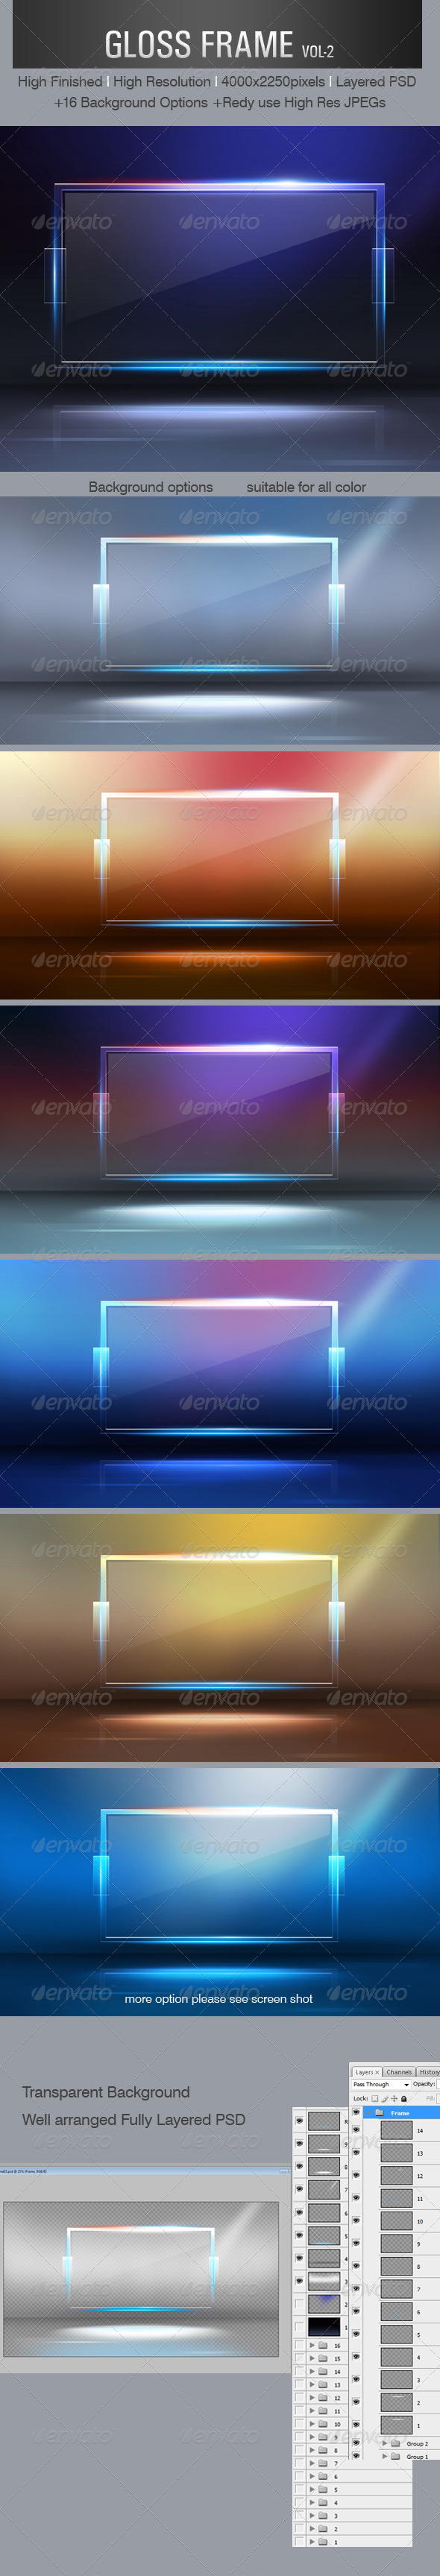 Gloss Frame - 3D Backgrounds